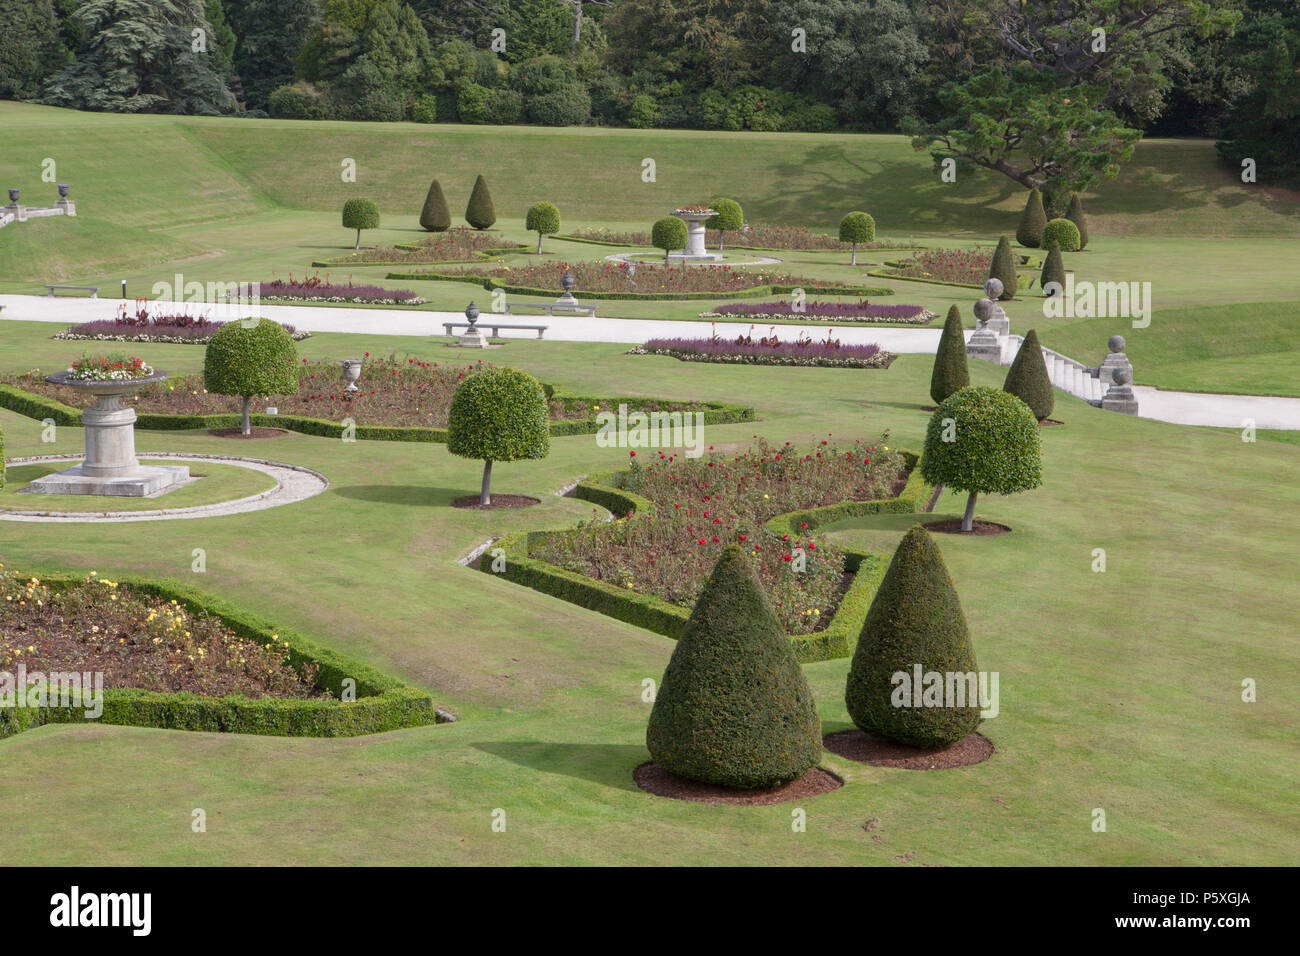 The Italian garden and Terraces at Powerscourt Garden in Ireland, a popular tourist attraction - Stock Image